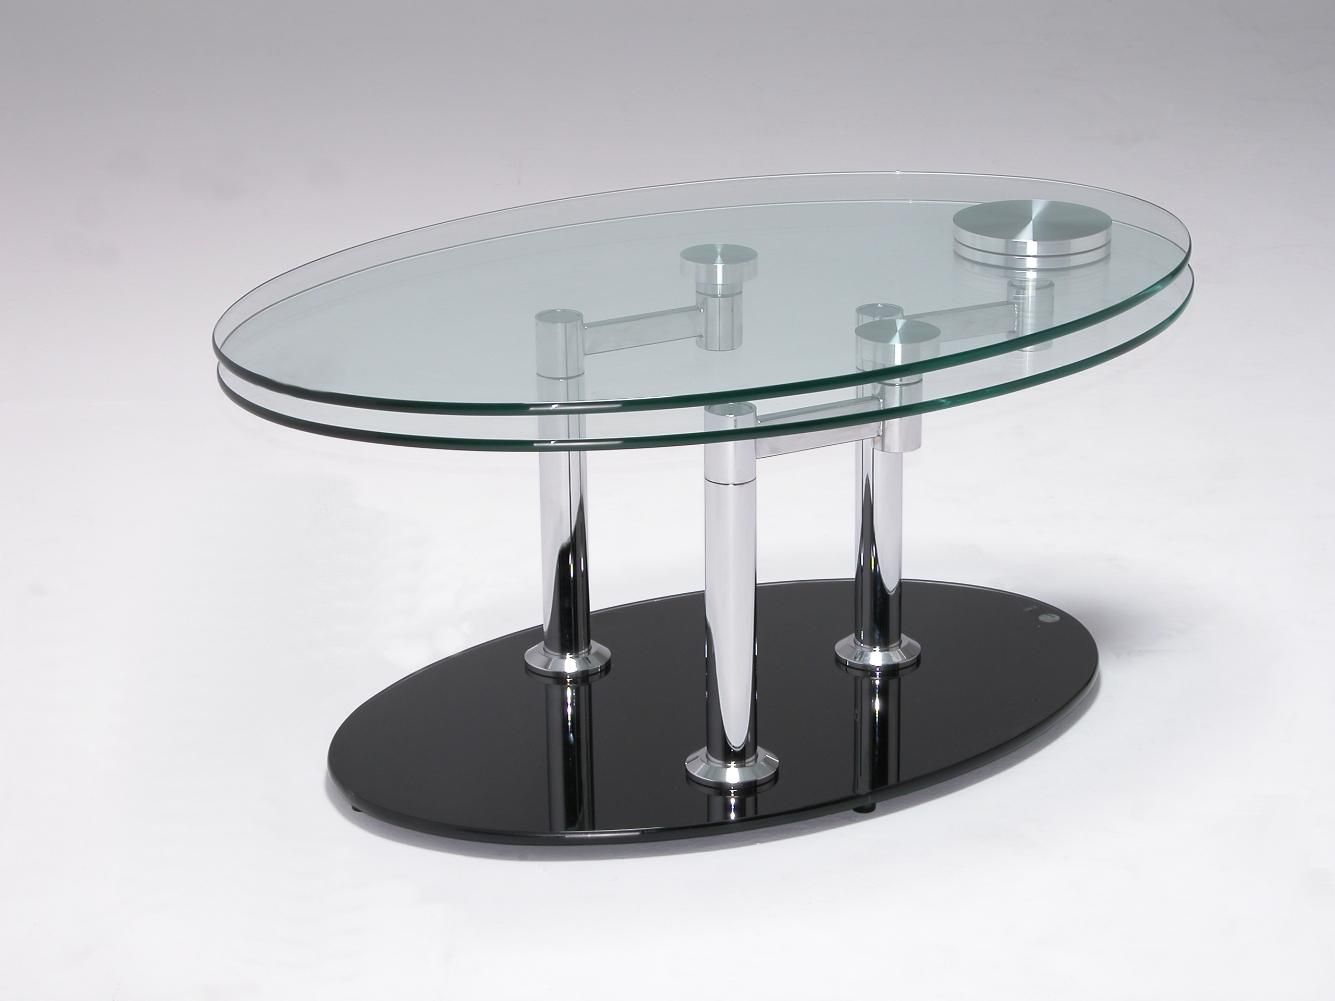 special modern coffee table picture » part 974 | home decor and